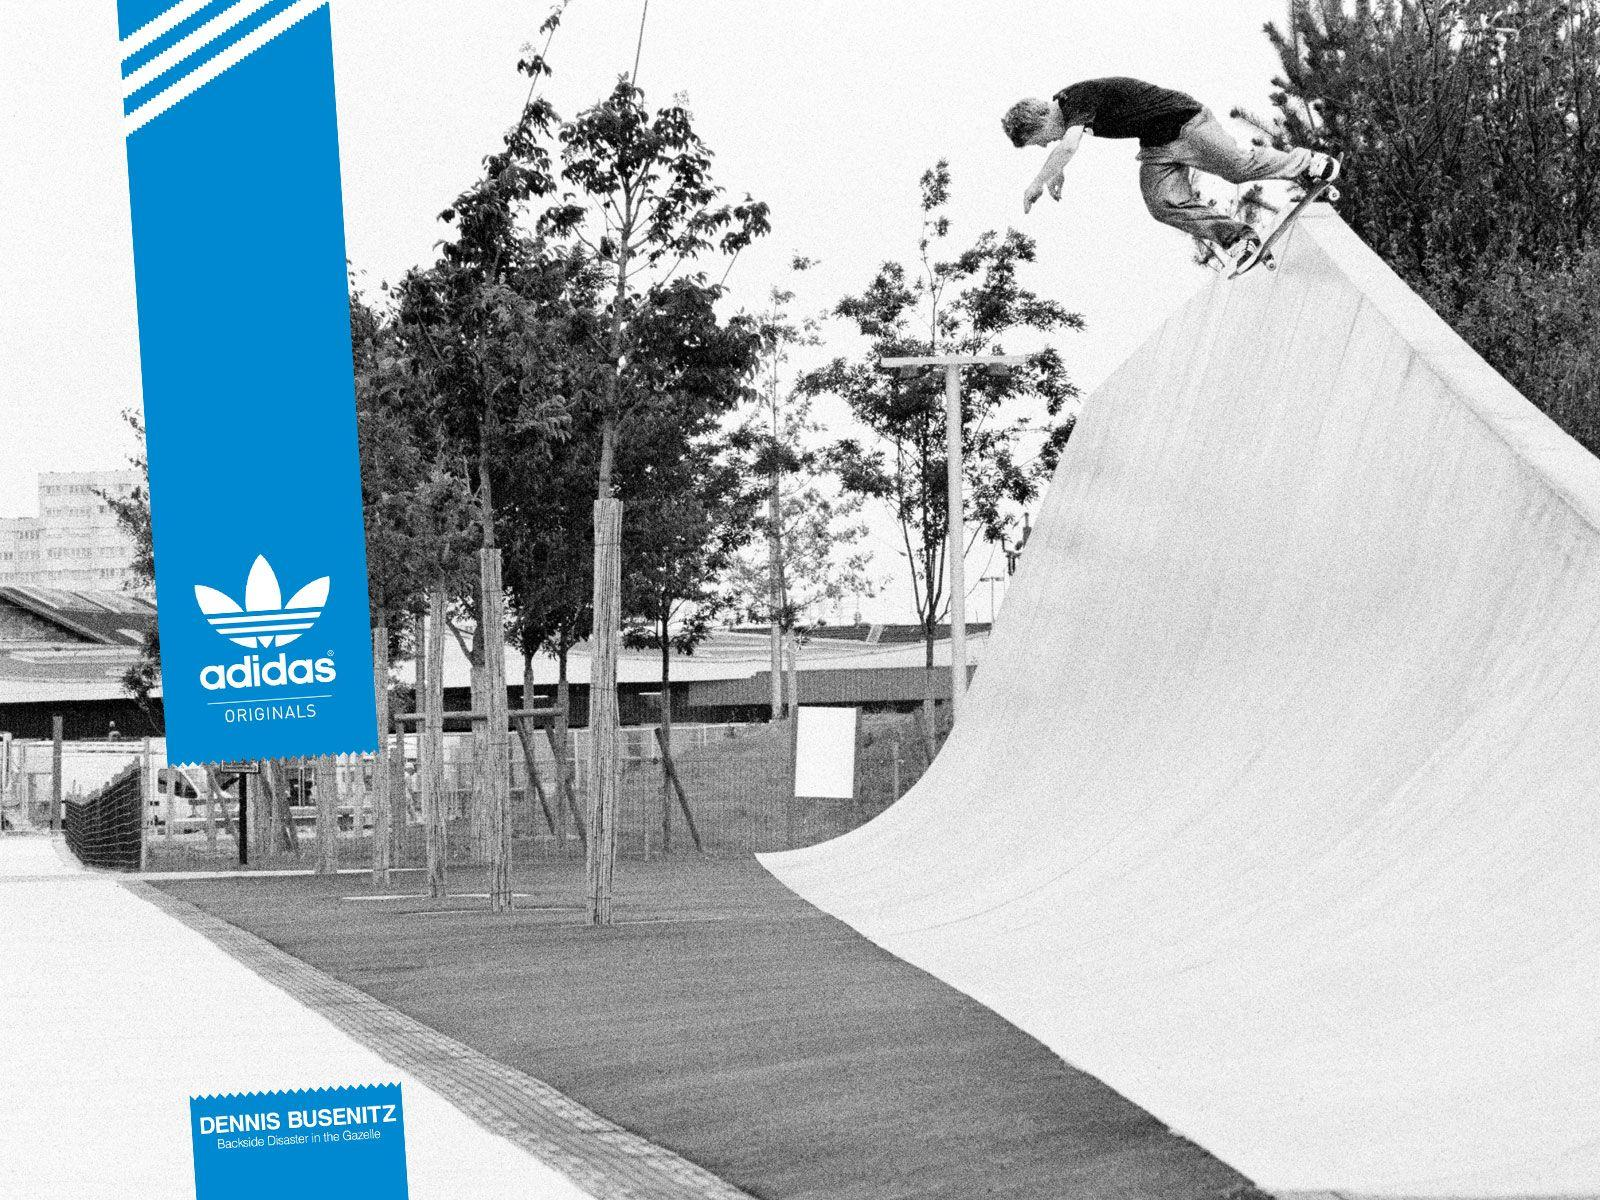 Adidas Skateboarding Wallpaper